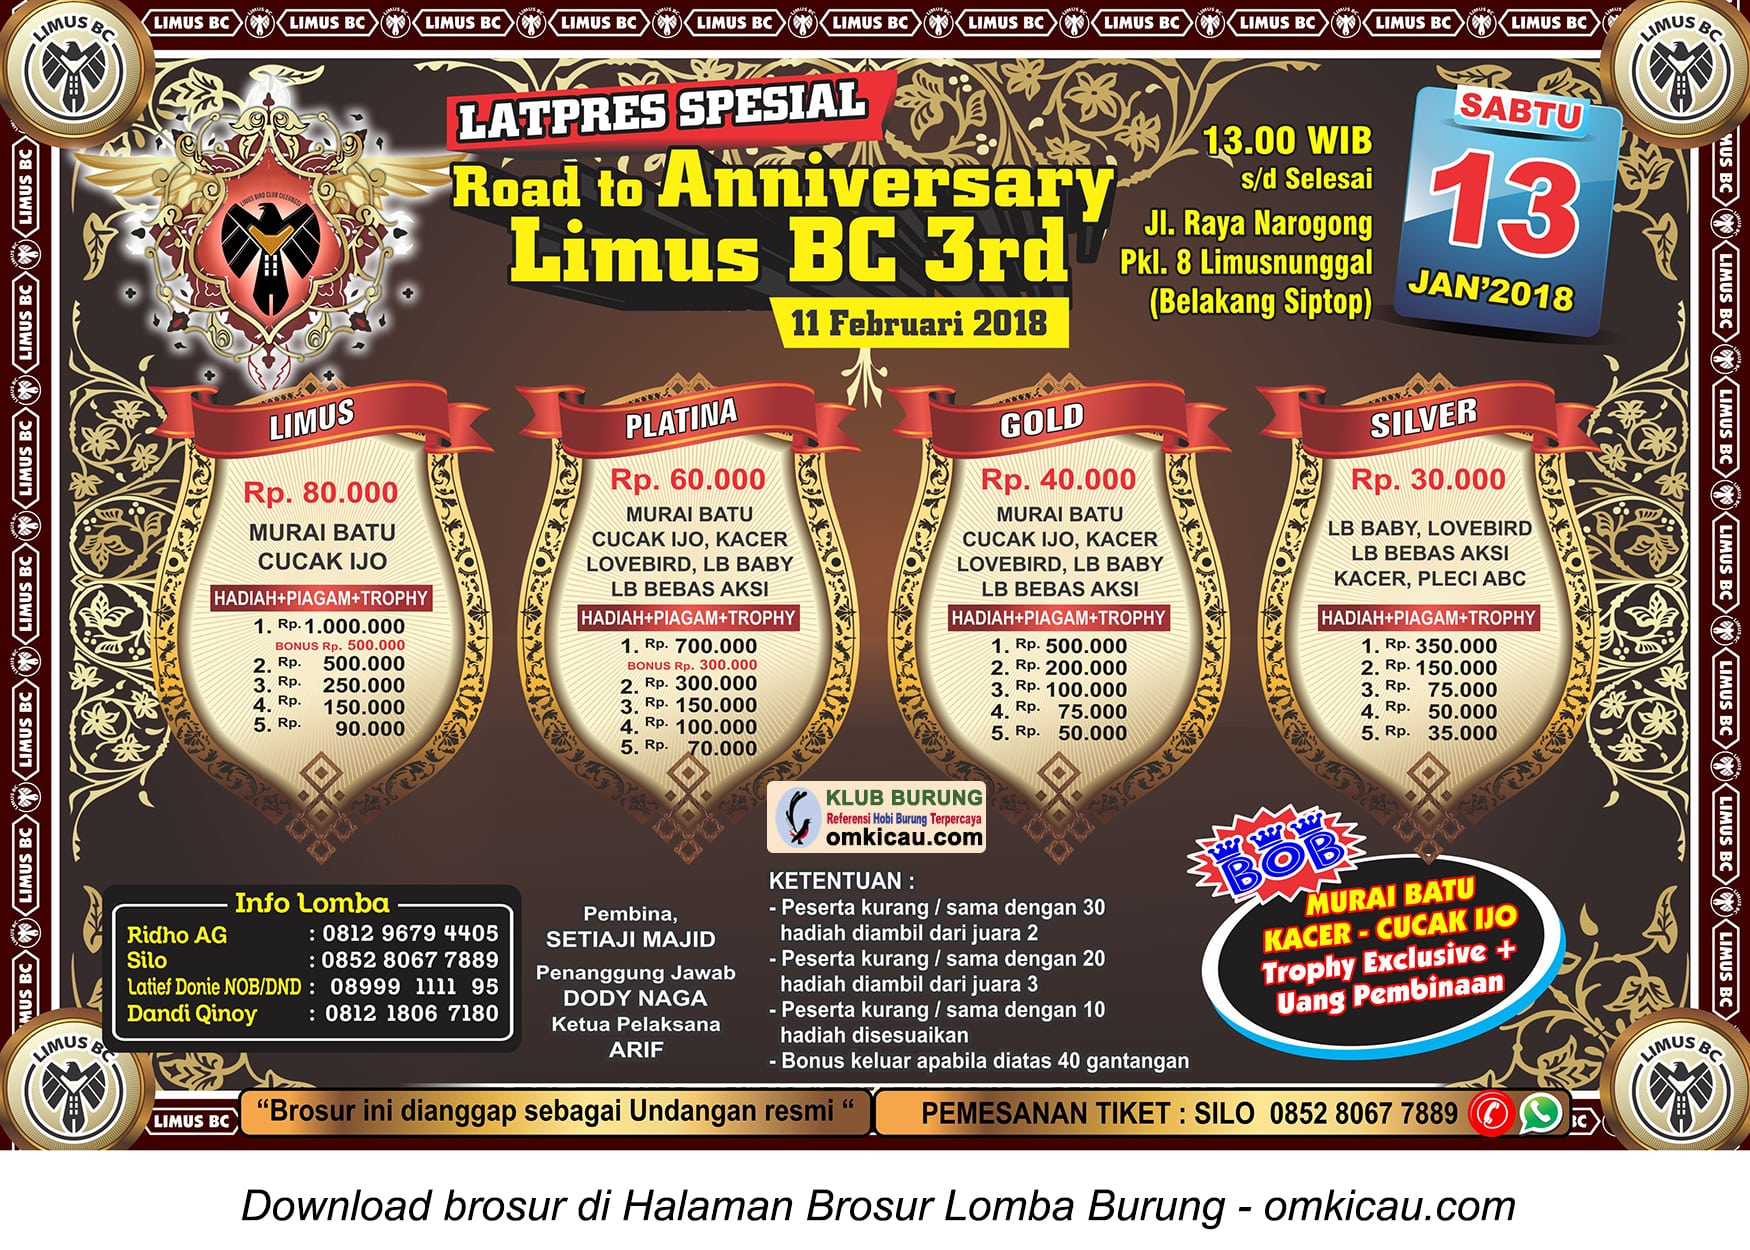 Road to 3rd Anniversary Limus BC